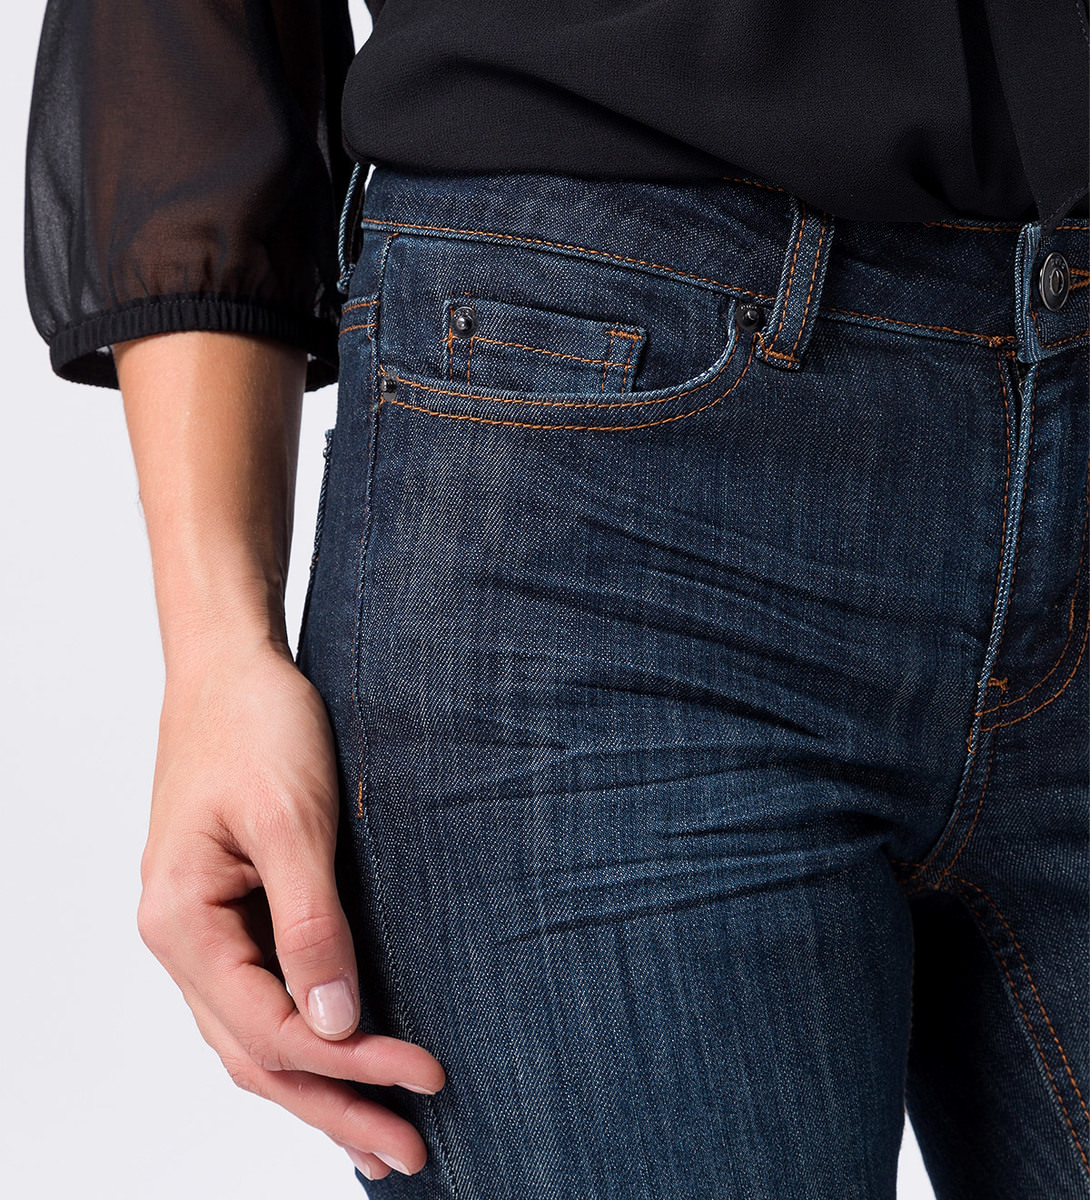 Jeans Slim fit  30 Inch in dark blue stone washed